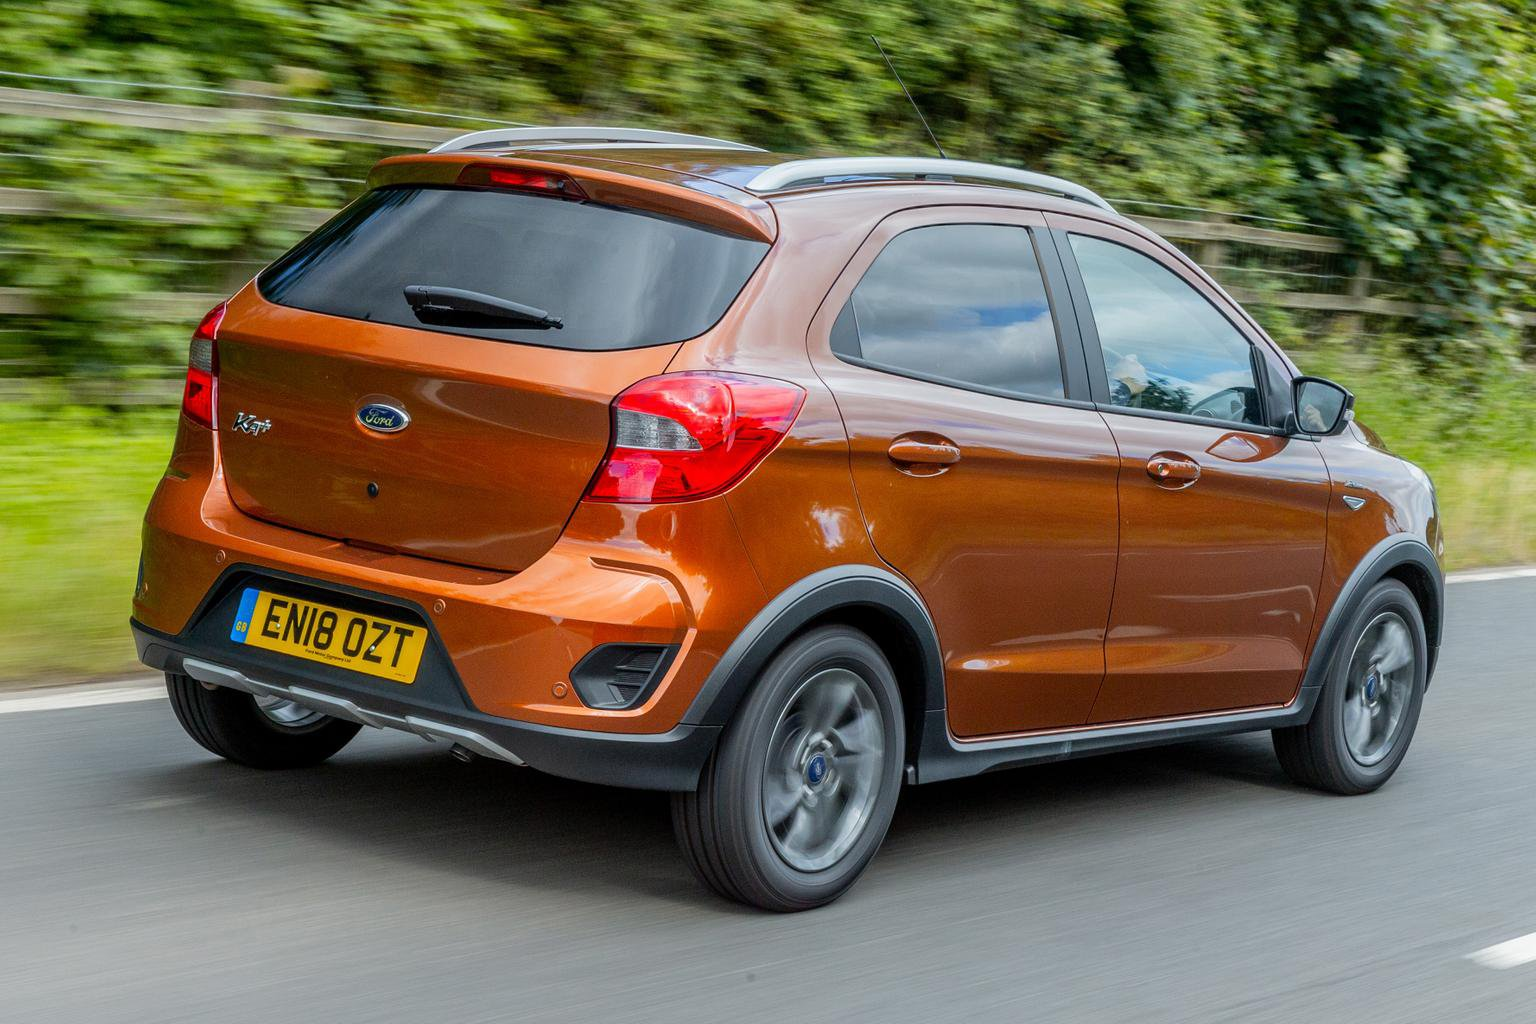 2018 Ford Ka+ Active review - price, specs and release date